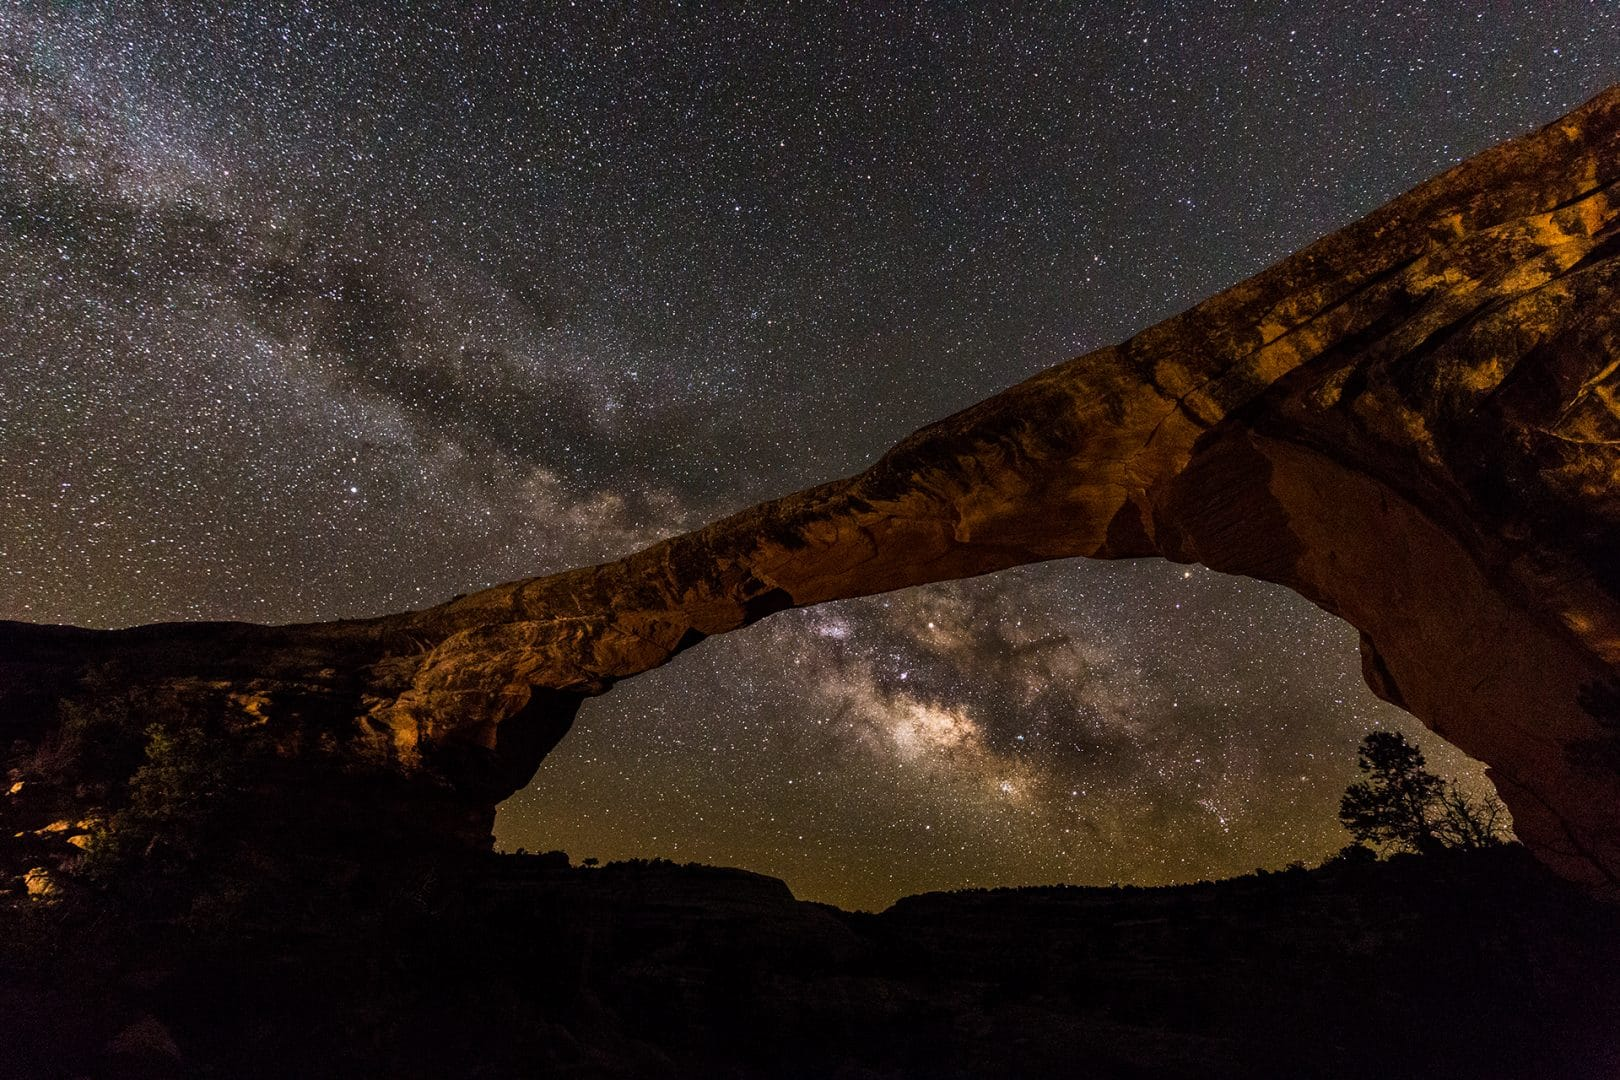 Milky Way Galactic Core framed in the gap under the Owochomo Natural Bridge at Natural Bridges National Monument.